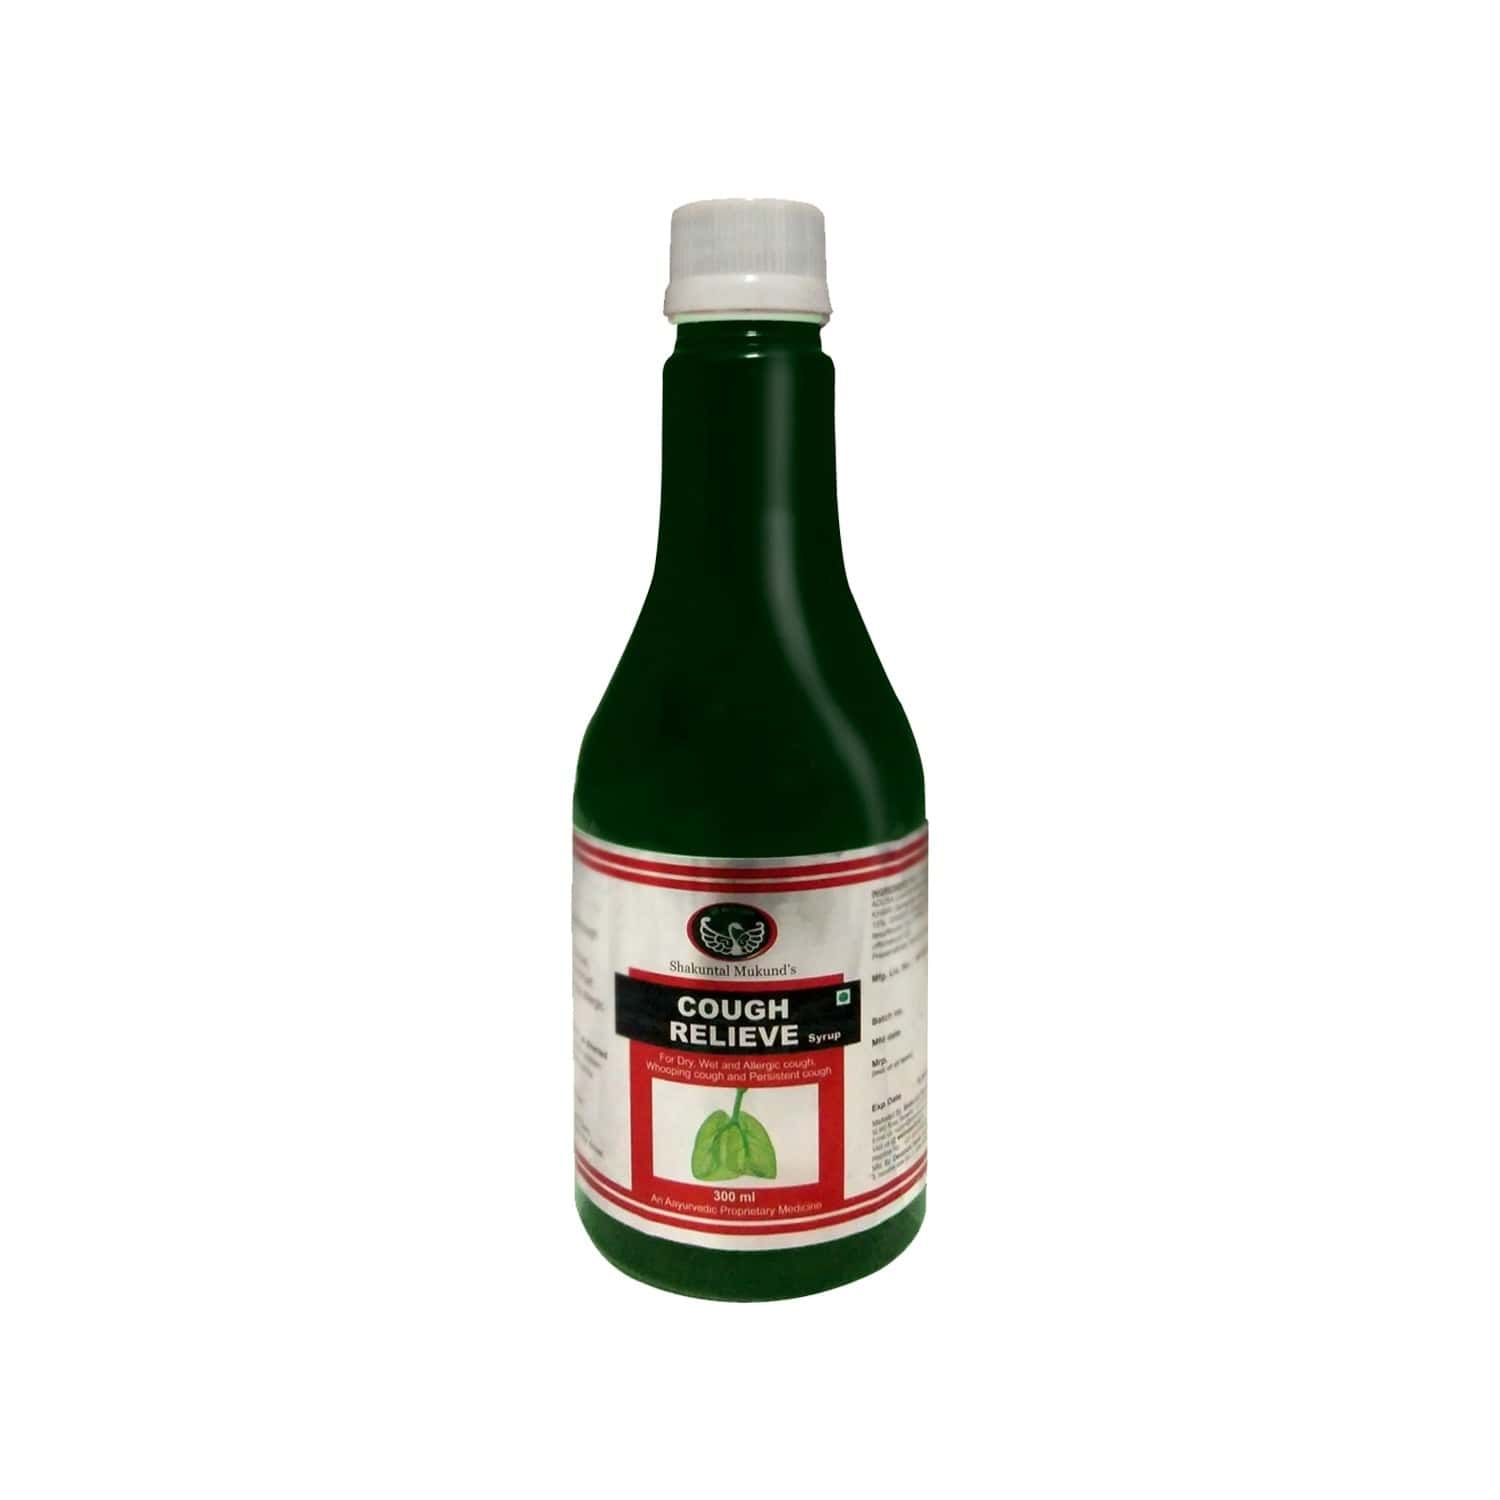 Smw's Coughrelieve Cough Syrup Bottle Of 300 Ml